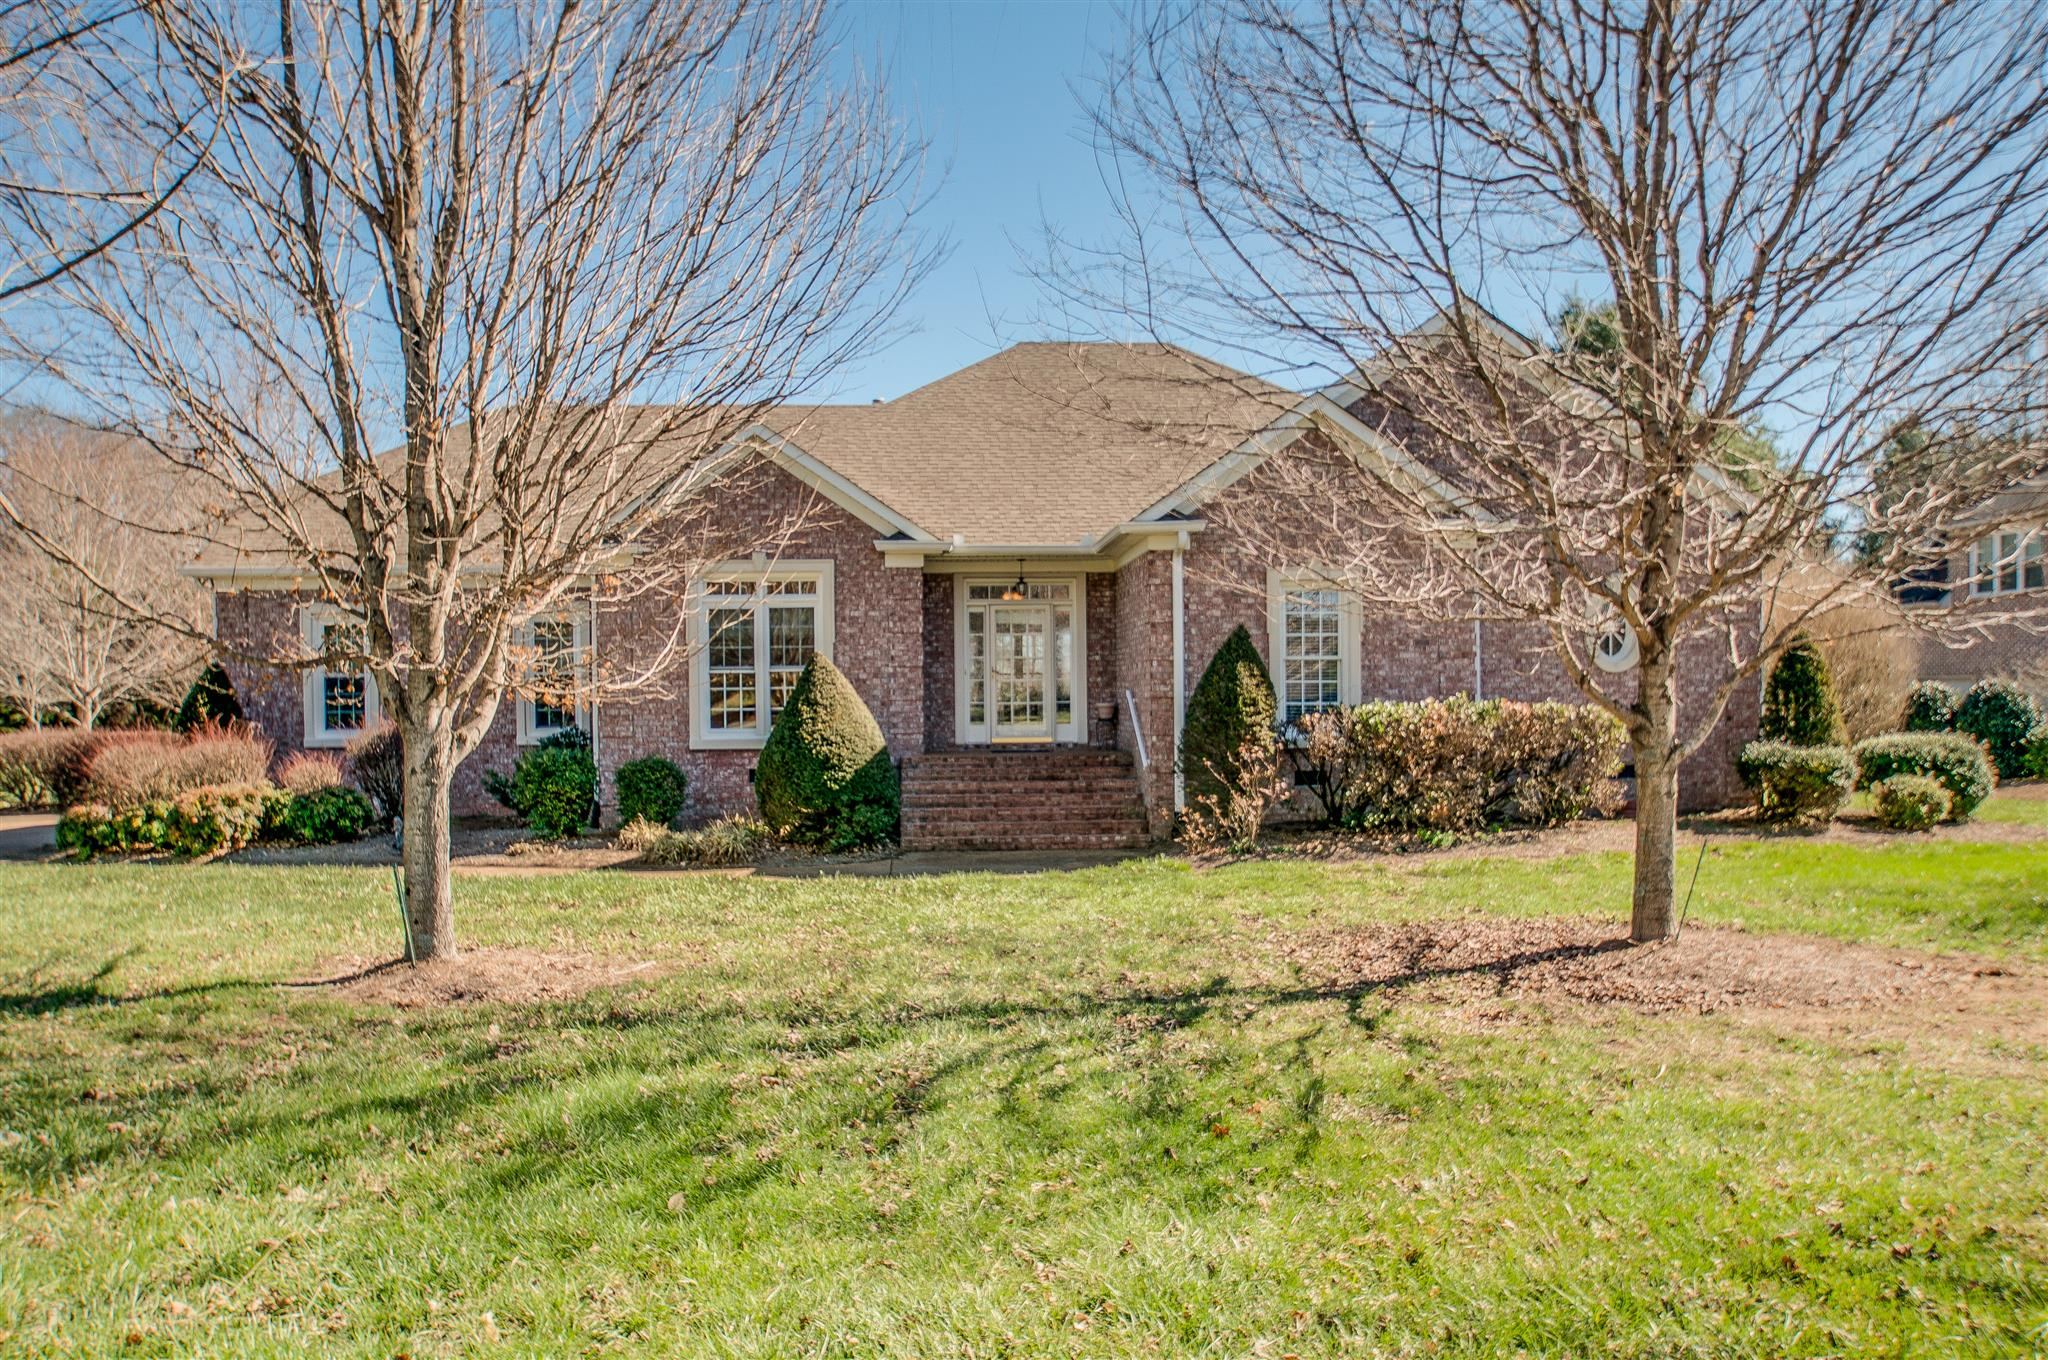 Whitehall Farms Subdivision Homes For Sale Franklin TN